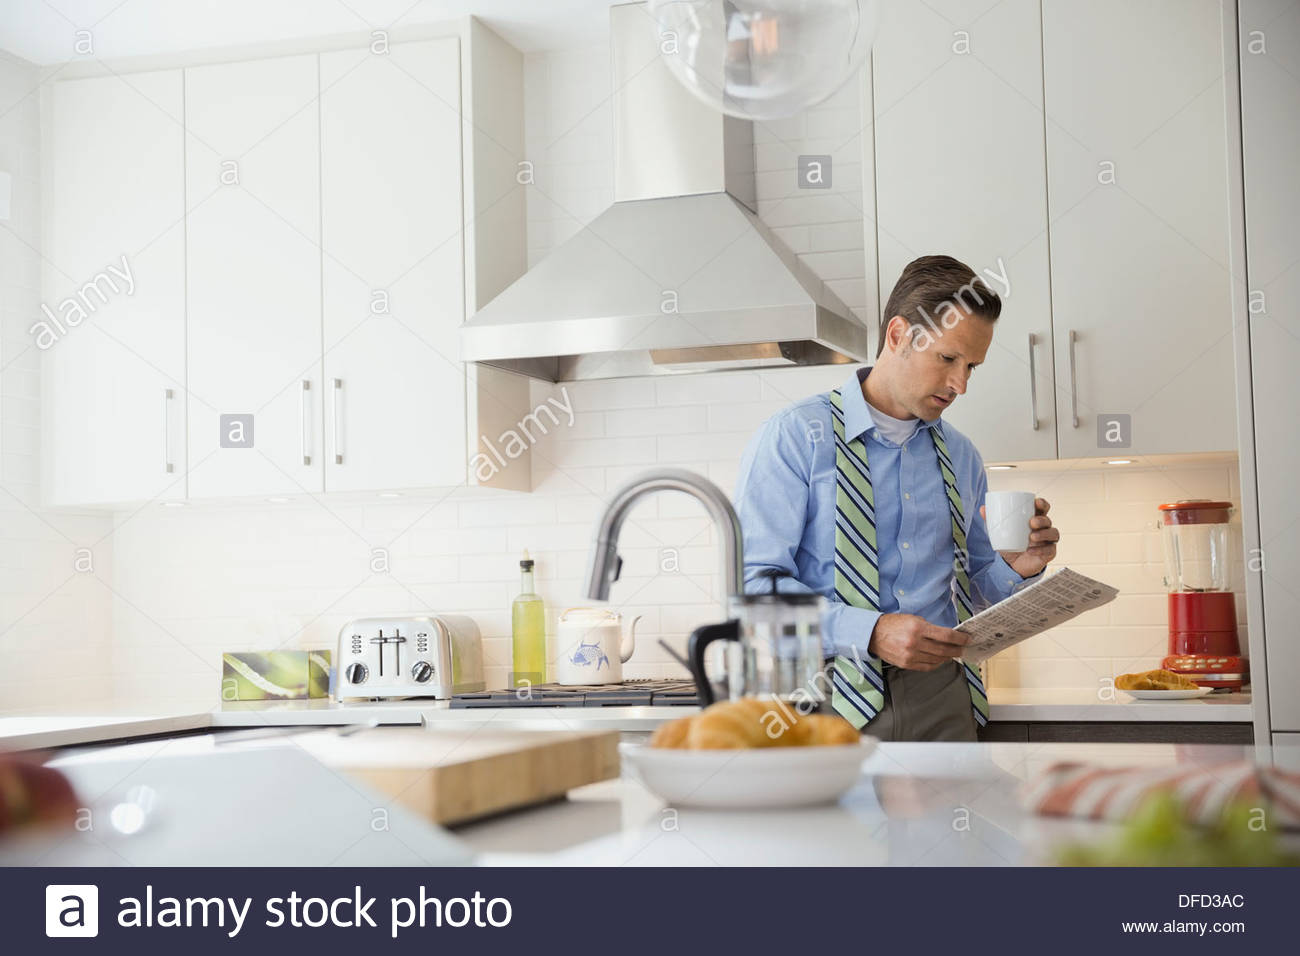 Businessman reading newspaper in cuisine domestique Photo Stock